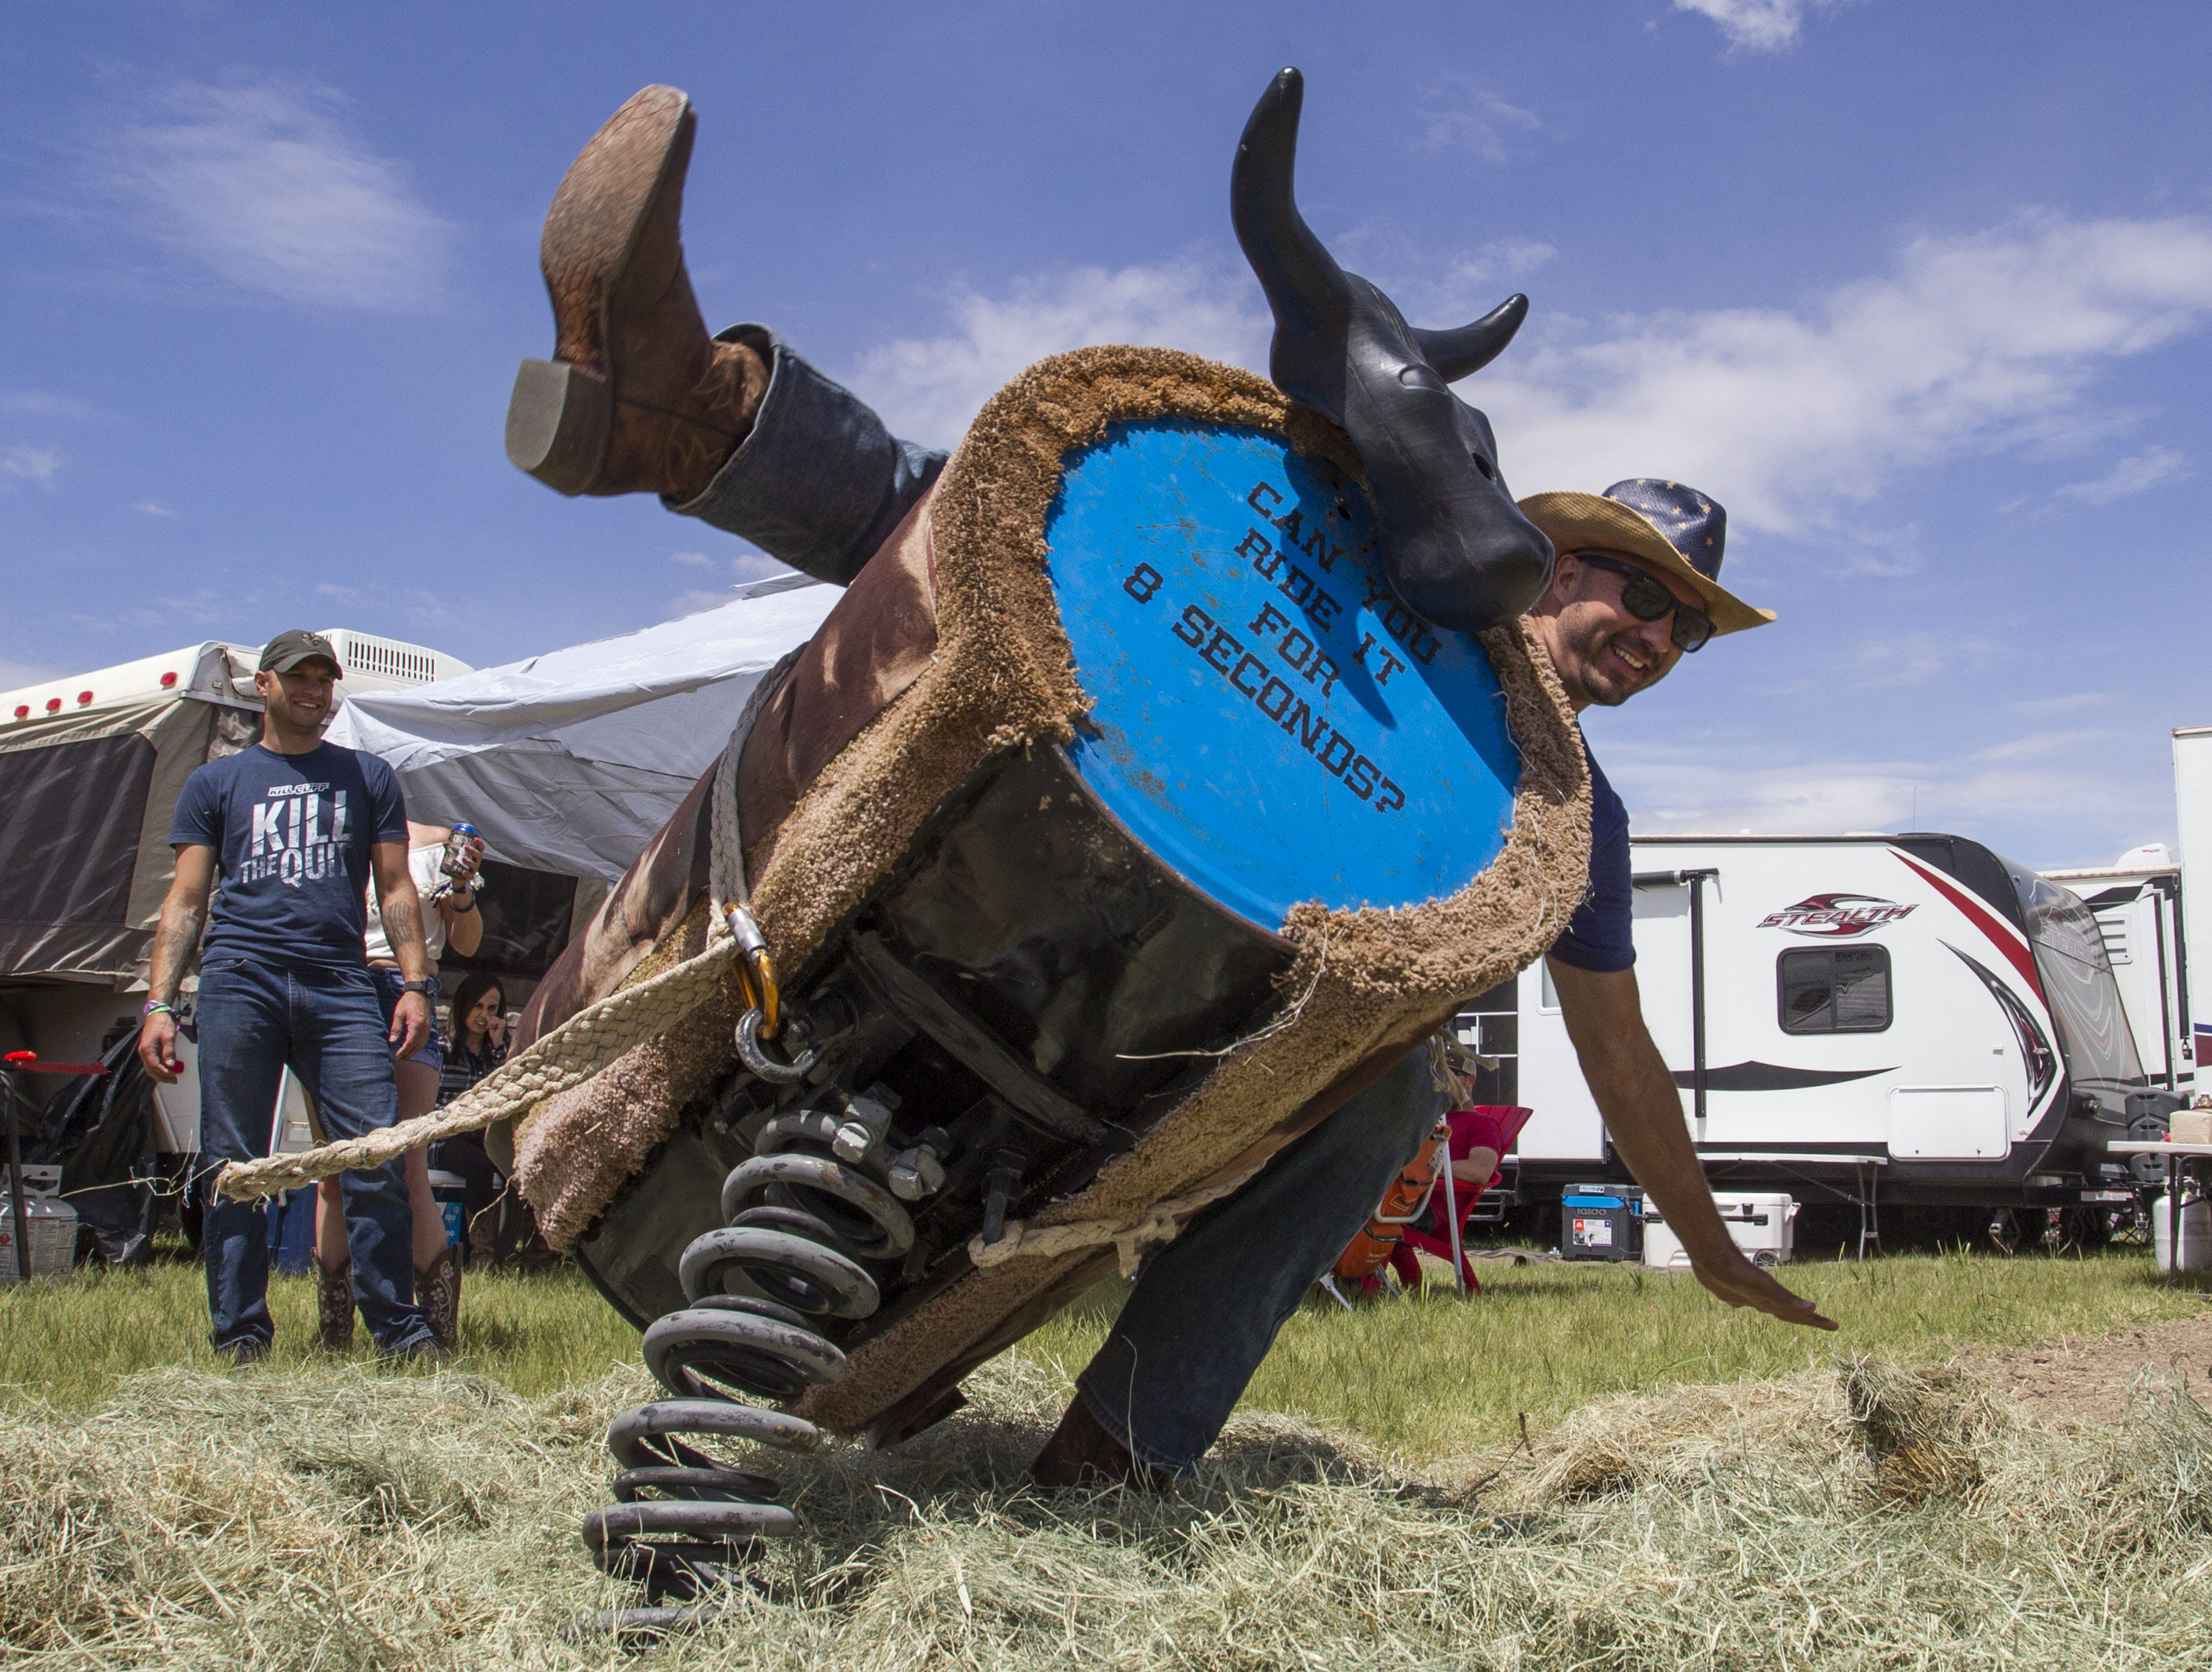 Daniel Valencia flies off the bull at I Love this Camp during Country Thunder Arizona Friday, April 12, 2019, in Florence, Arizona.